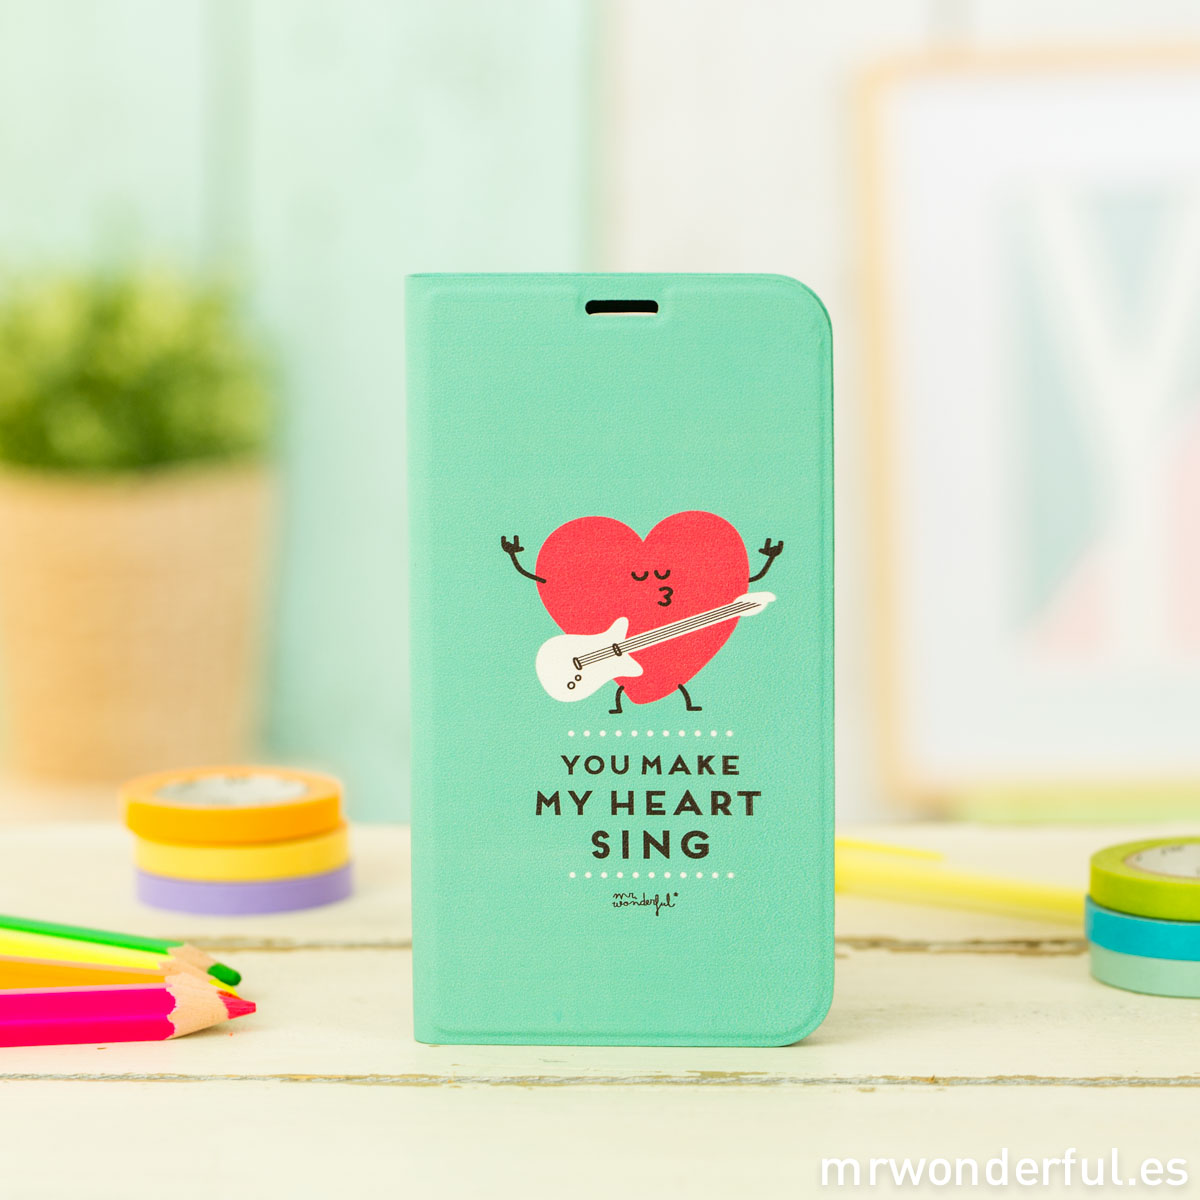 mrwonderful_MRFOL004_funda-mint-samsung-galaxy-S5_you-make-heart-sing-27